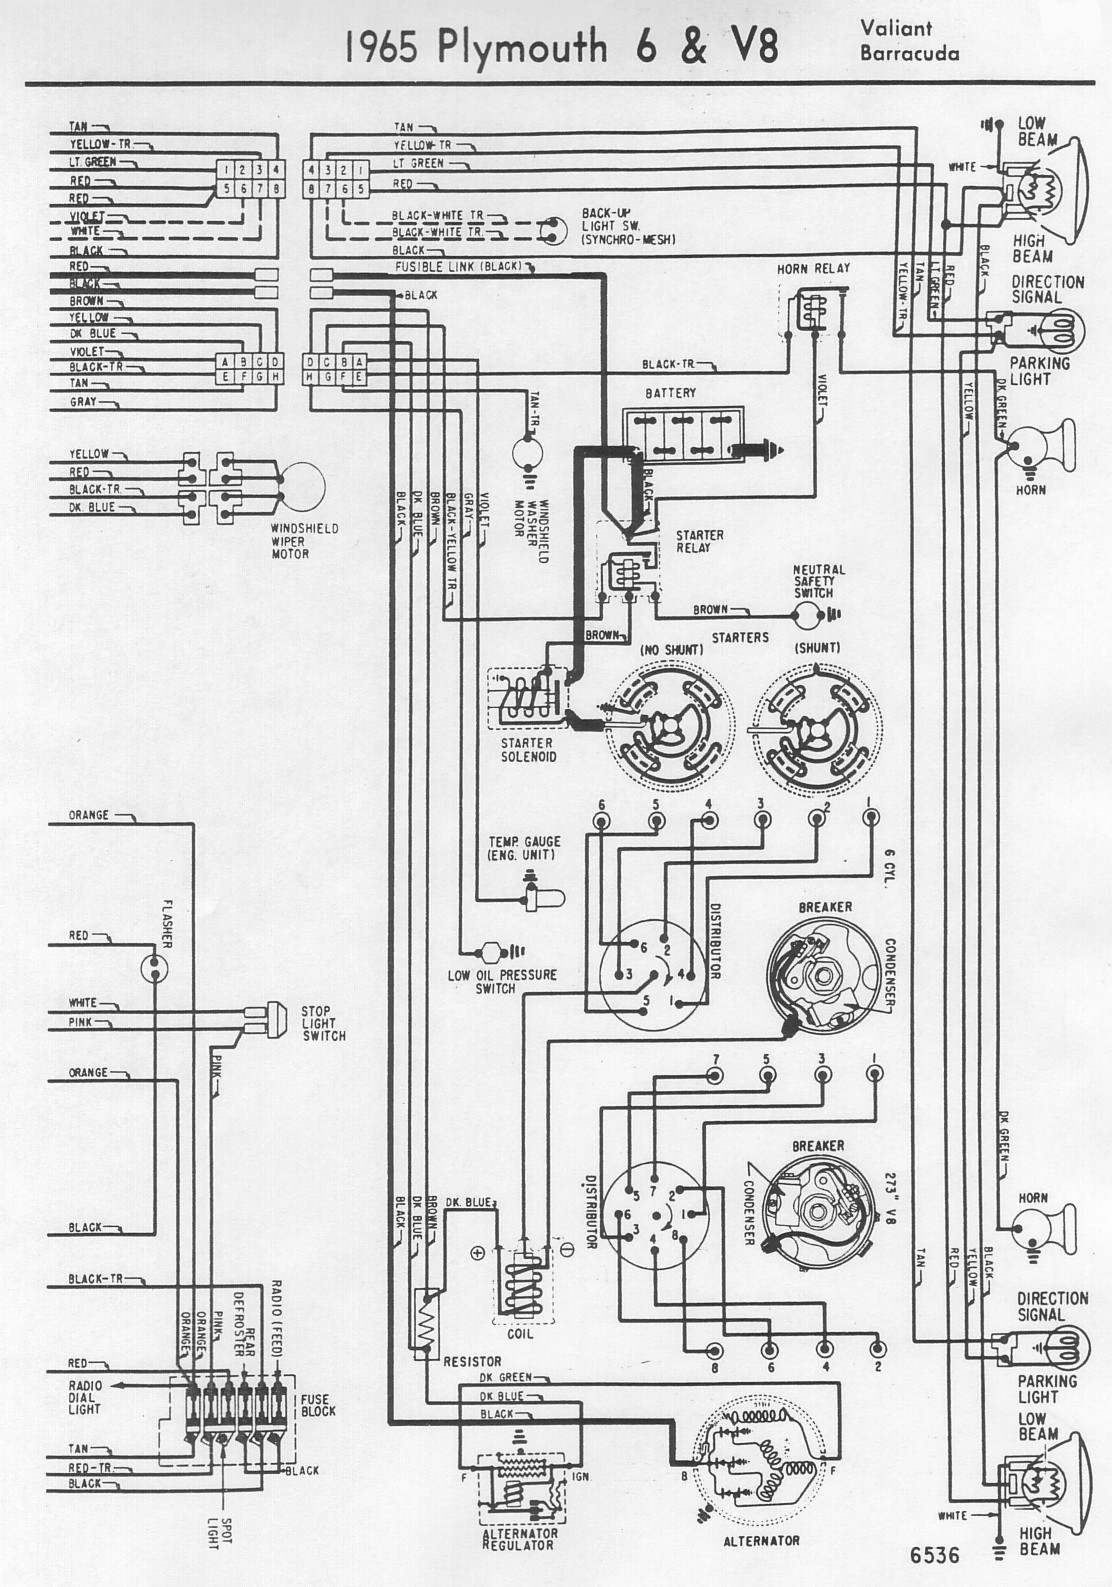 68 Valiant Wiring Diagram | Wiring Diagram on 1968 camaro wiring schematic, 1970 camaro wiring schematic, 1968 corvette ignition switch, 1967 chevelle wiring schematic, 1968 corvette electrical schematic, 1968 vw wiring schematic, 1968 volkswagen wiring schematic, wiper motor wiring schematic, 1967 gto wiring schematic, 1968 mustang wiring schematic, 1968 corvette hood, 1968 corvette engine, 1969 chevelle wiring schematic, 1968 corvette parts layout, 1968 firebird wiring schematic, 1968 el camino wiring schematic, 1968 corvette starter wiring, 1968 corvette gauges, 1968 chevelle wiring schematic, 1968 corvette alternator wiring,